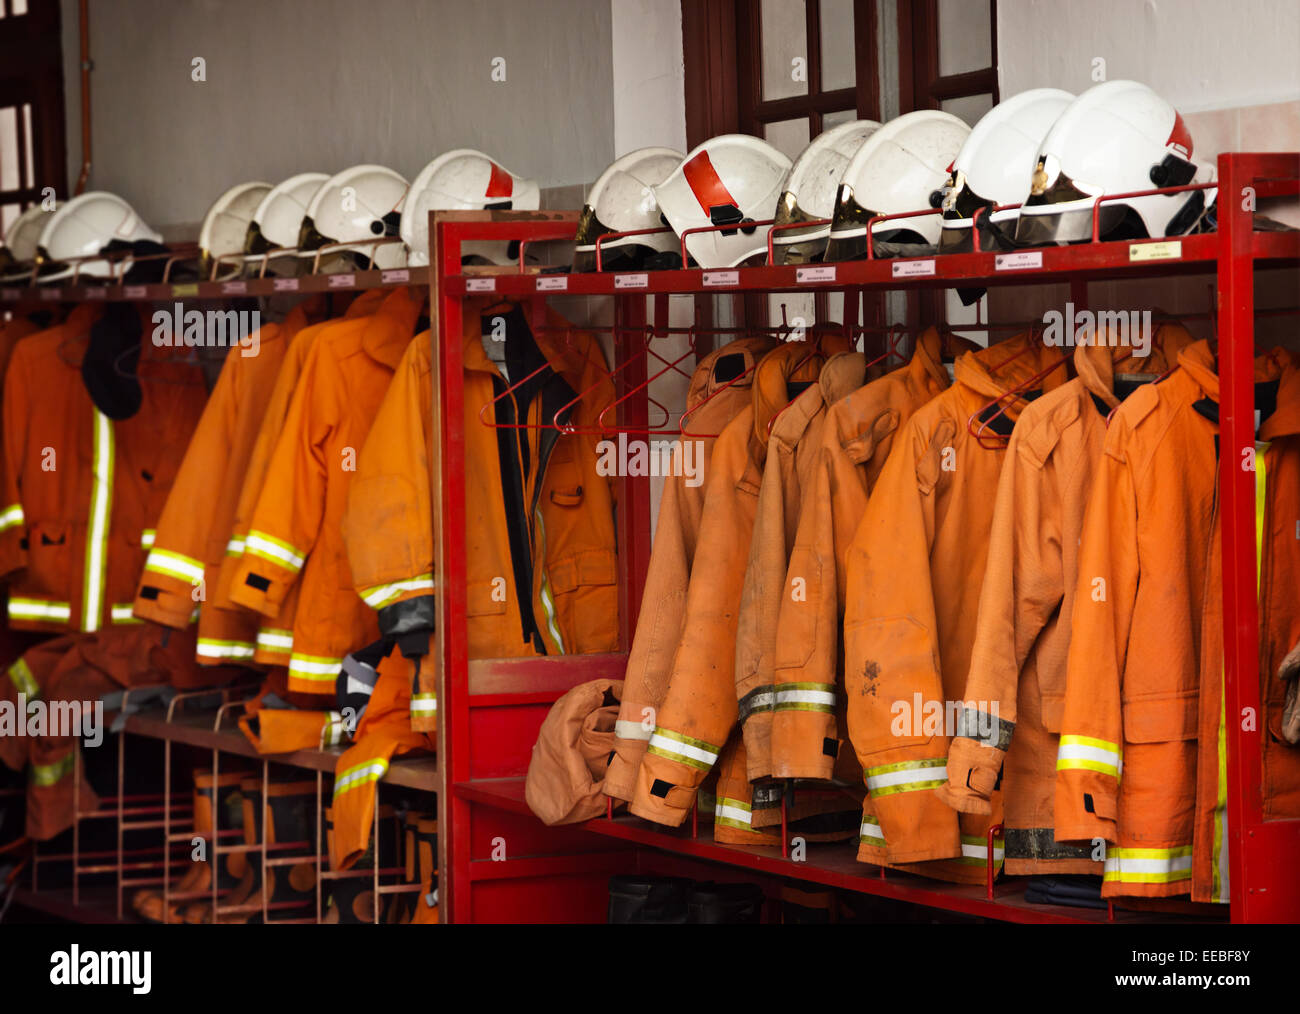 Firefighting safety equipment, including helmets, flame-resistant jackets and boots, arranged on a rack at the Georgetown - Stock Image